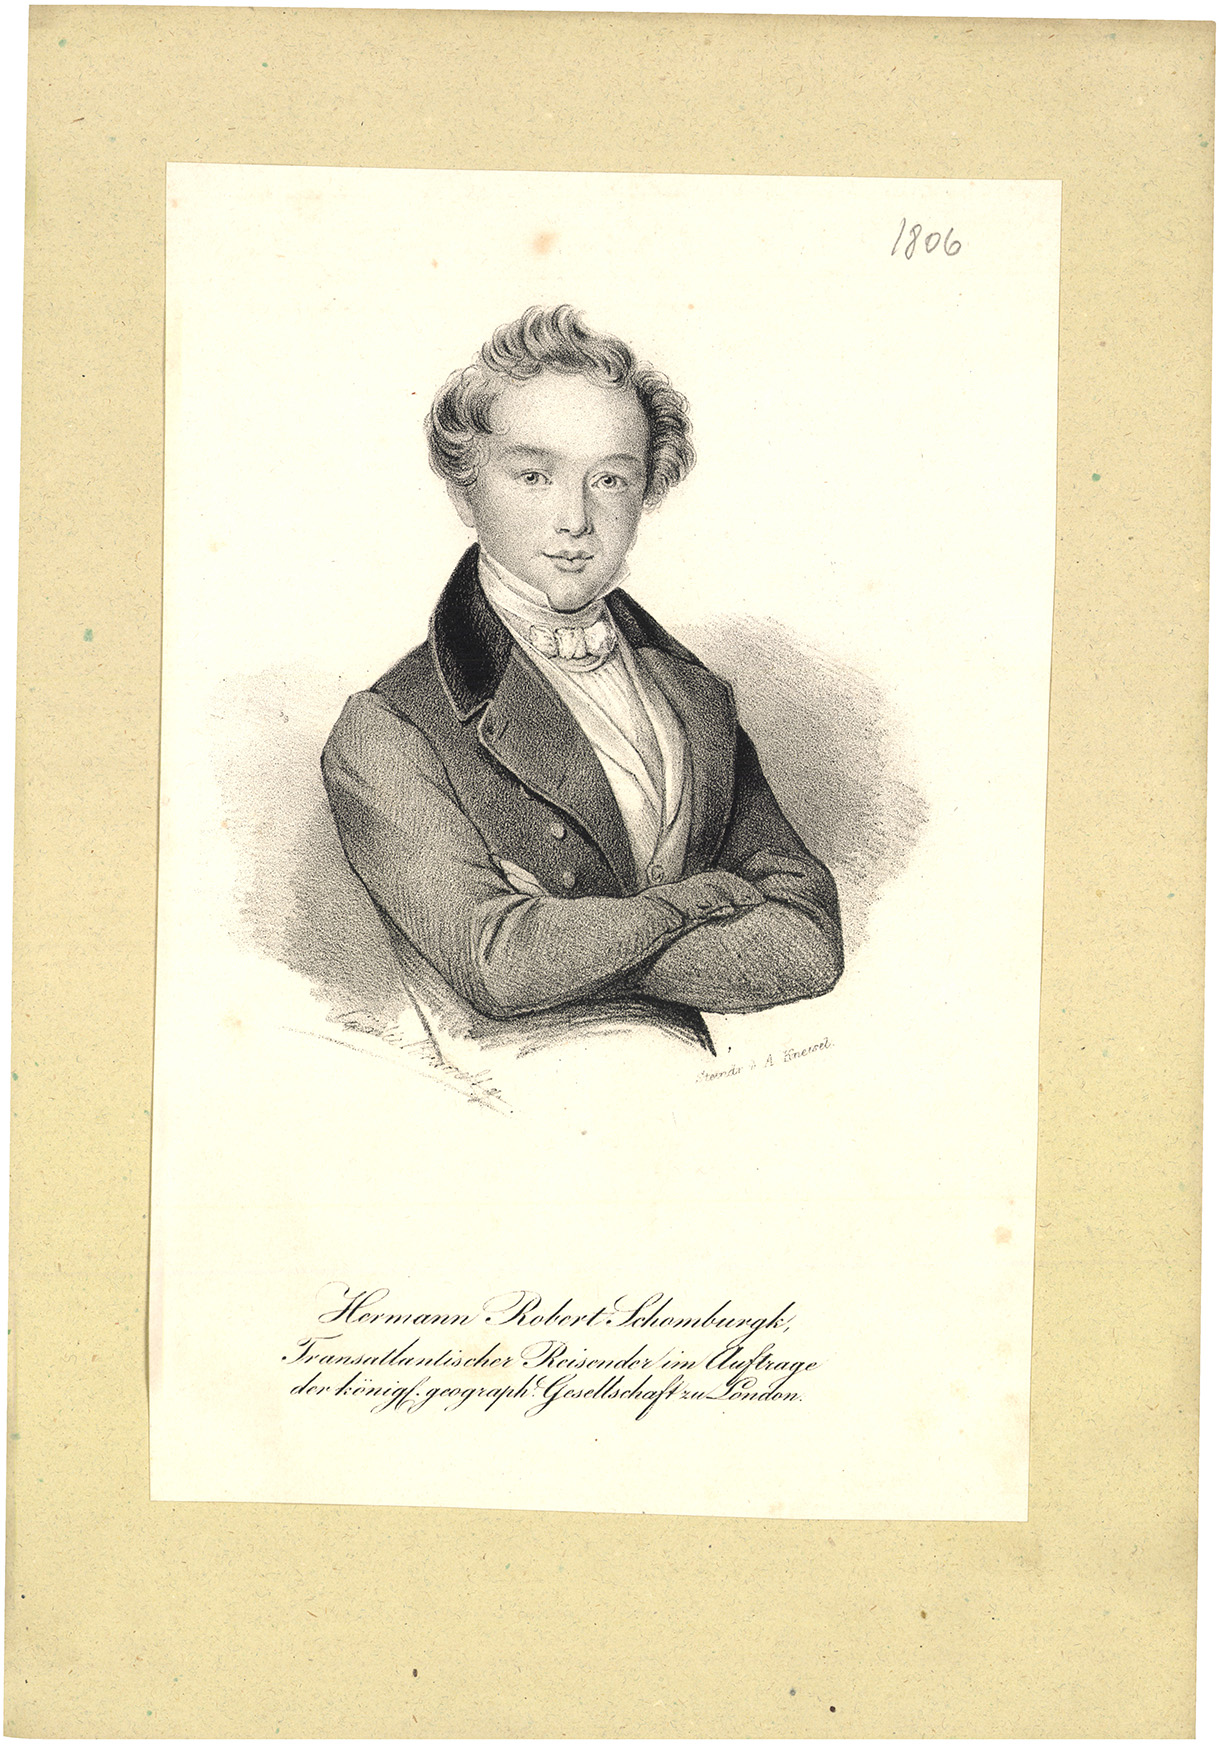 Hermann Robert Schomburgk